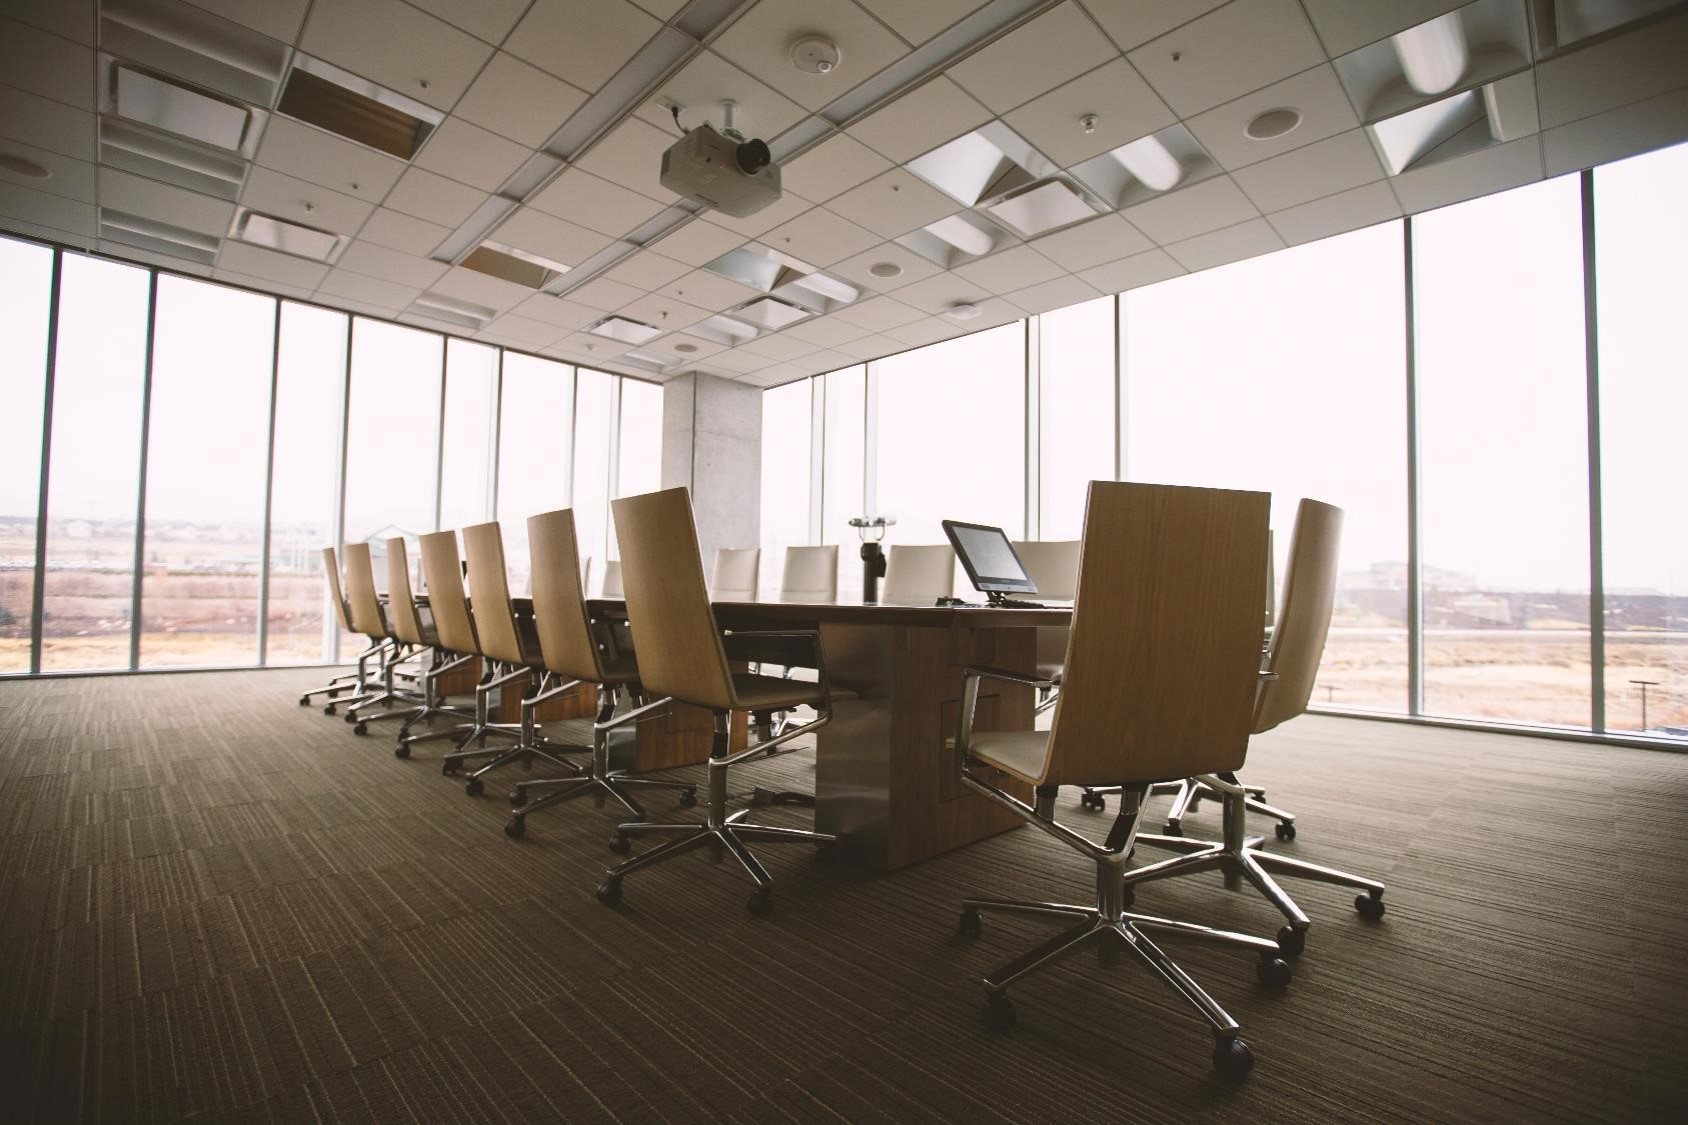 The most obvious test in determining whether an Independent executive directors is distracted is if he assists to board meetings